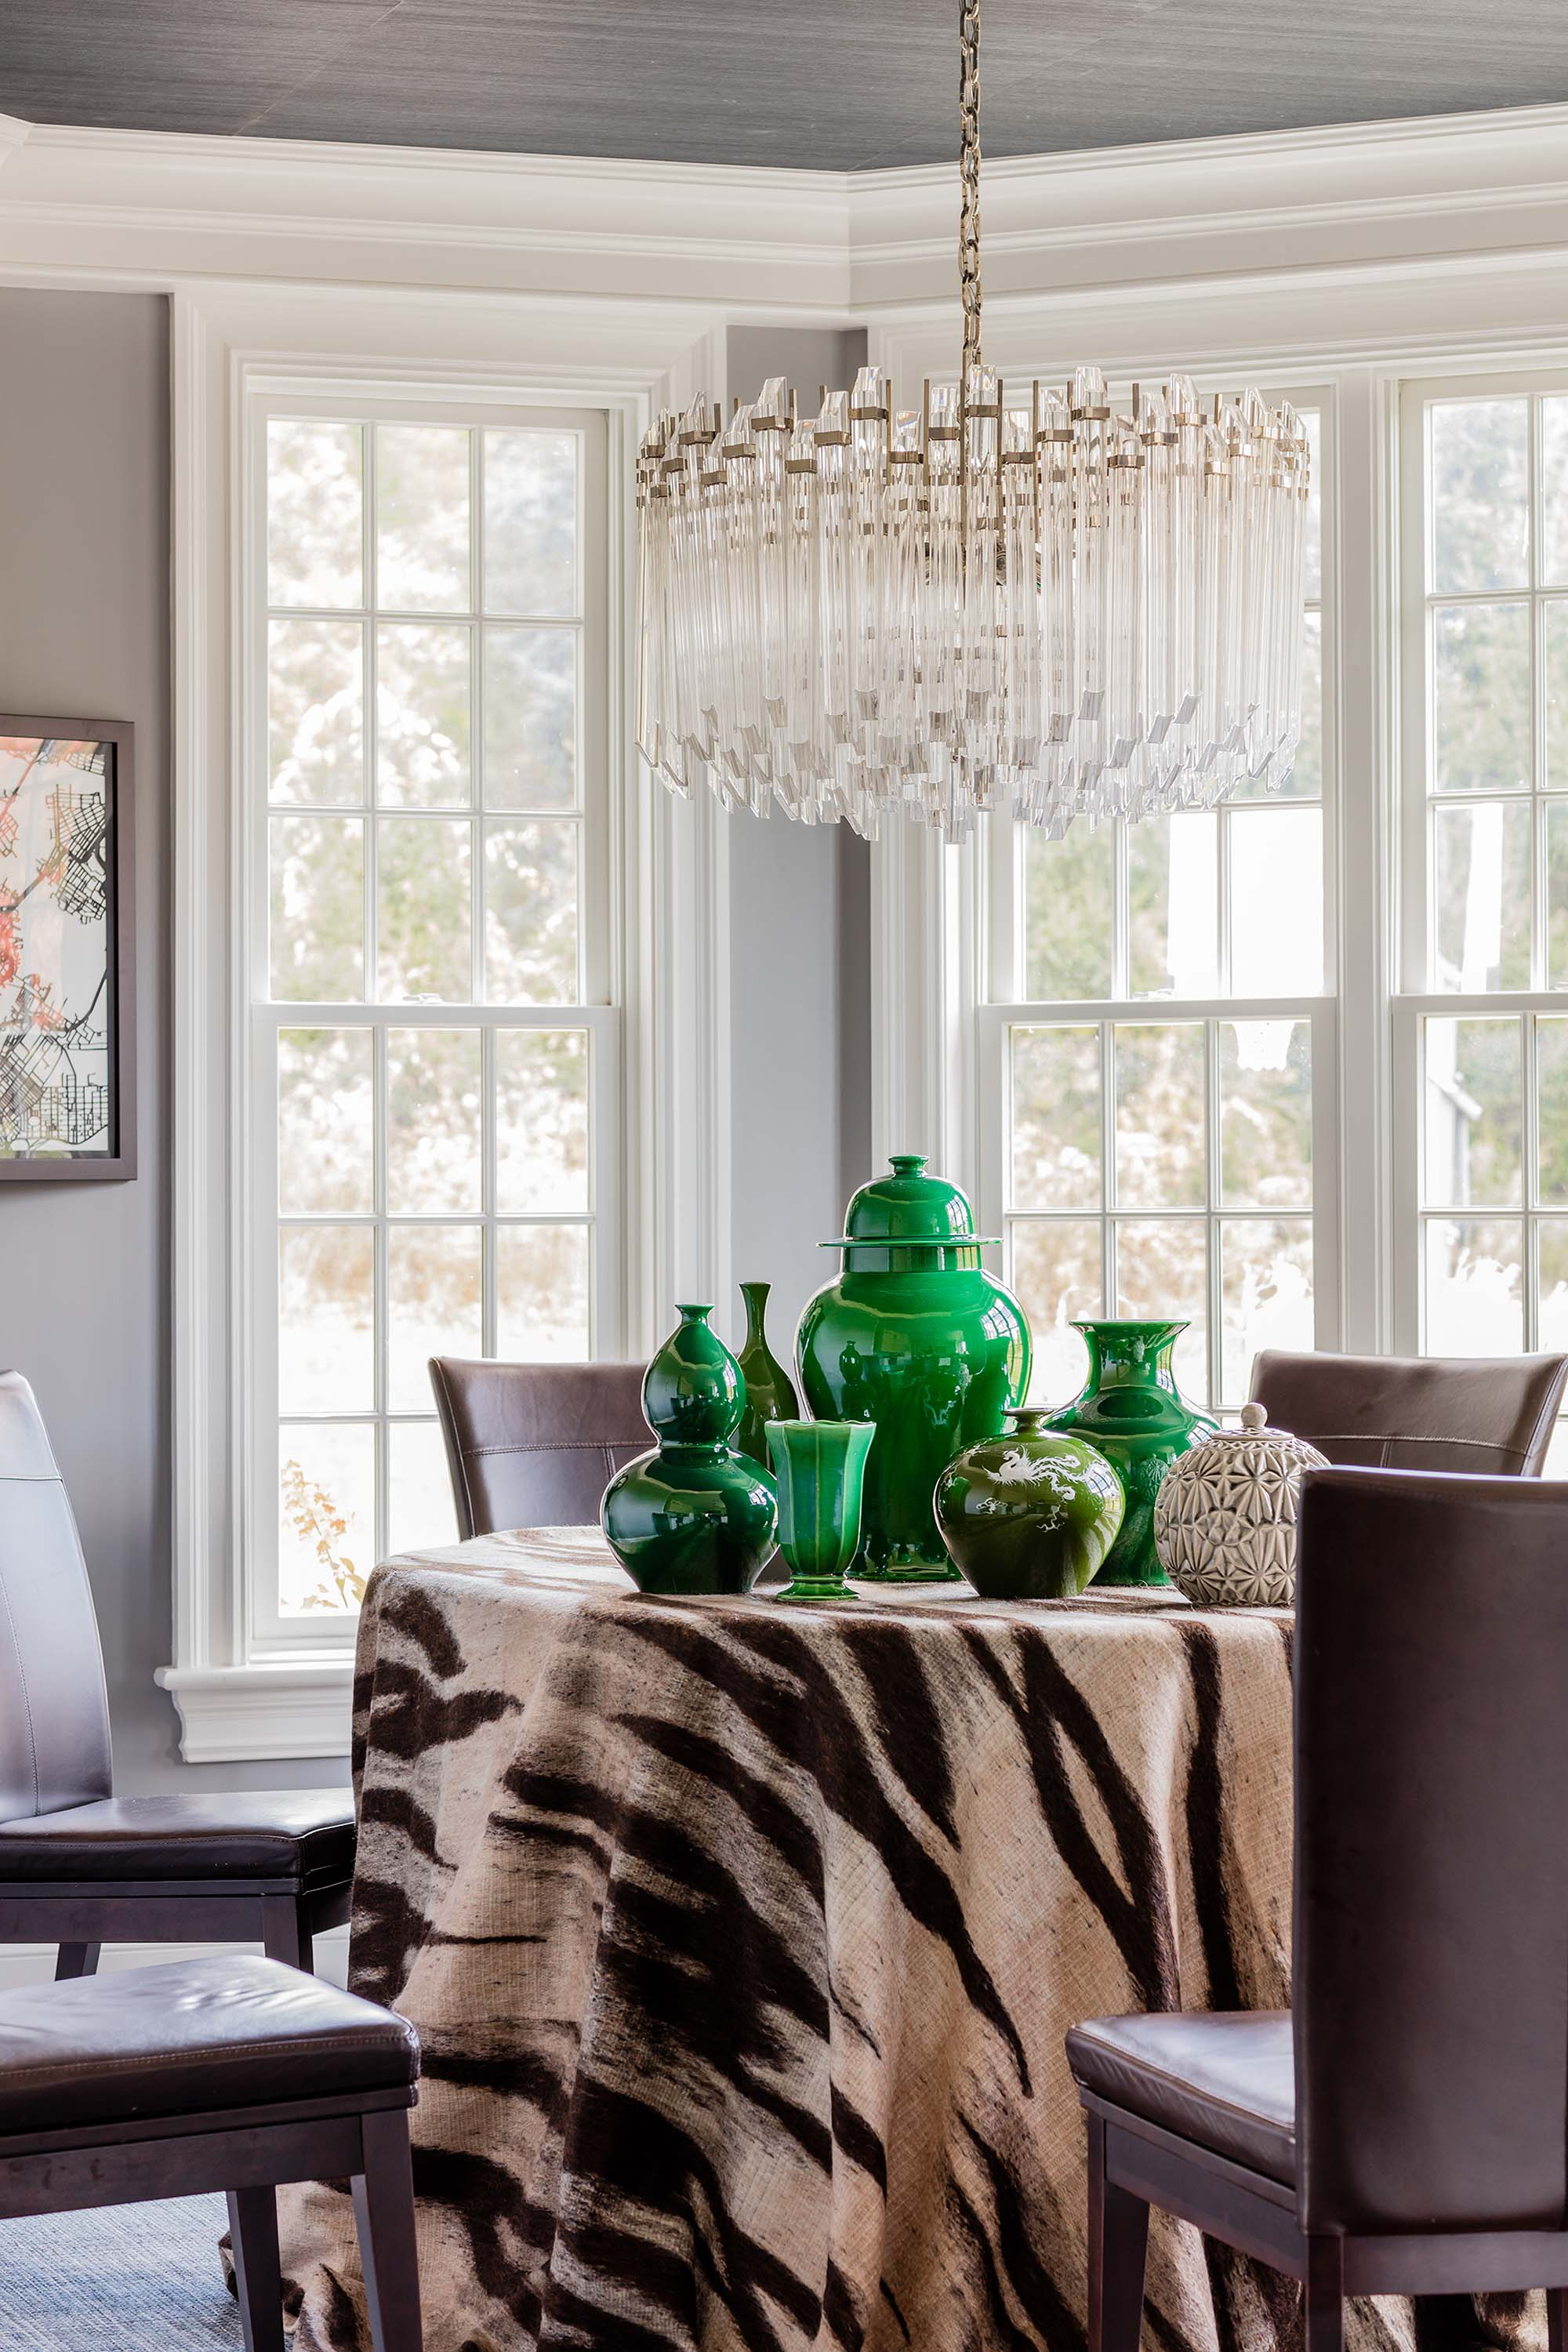 Round table with ceramic vases, chairs, and a chandelier, green vase, green ginger jar, mohair, mohair table skirt, table skirt, visual comfort, adele chandelier, adele, ceiling wallpaper, blue silk wallpaper